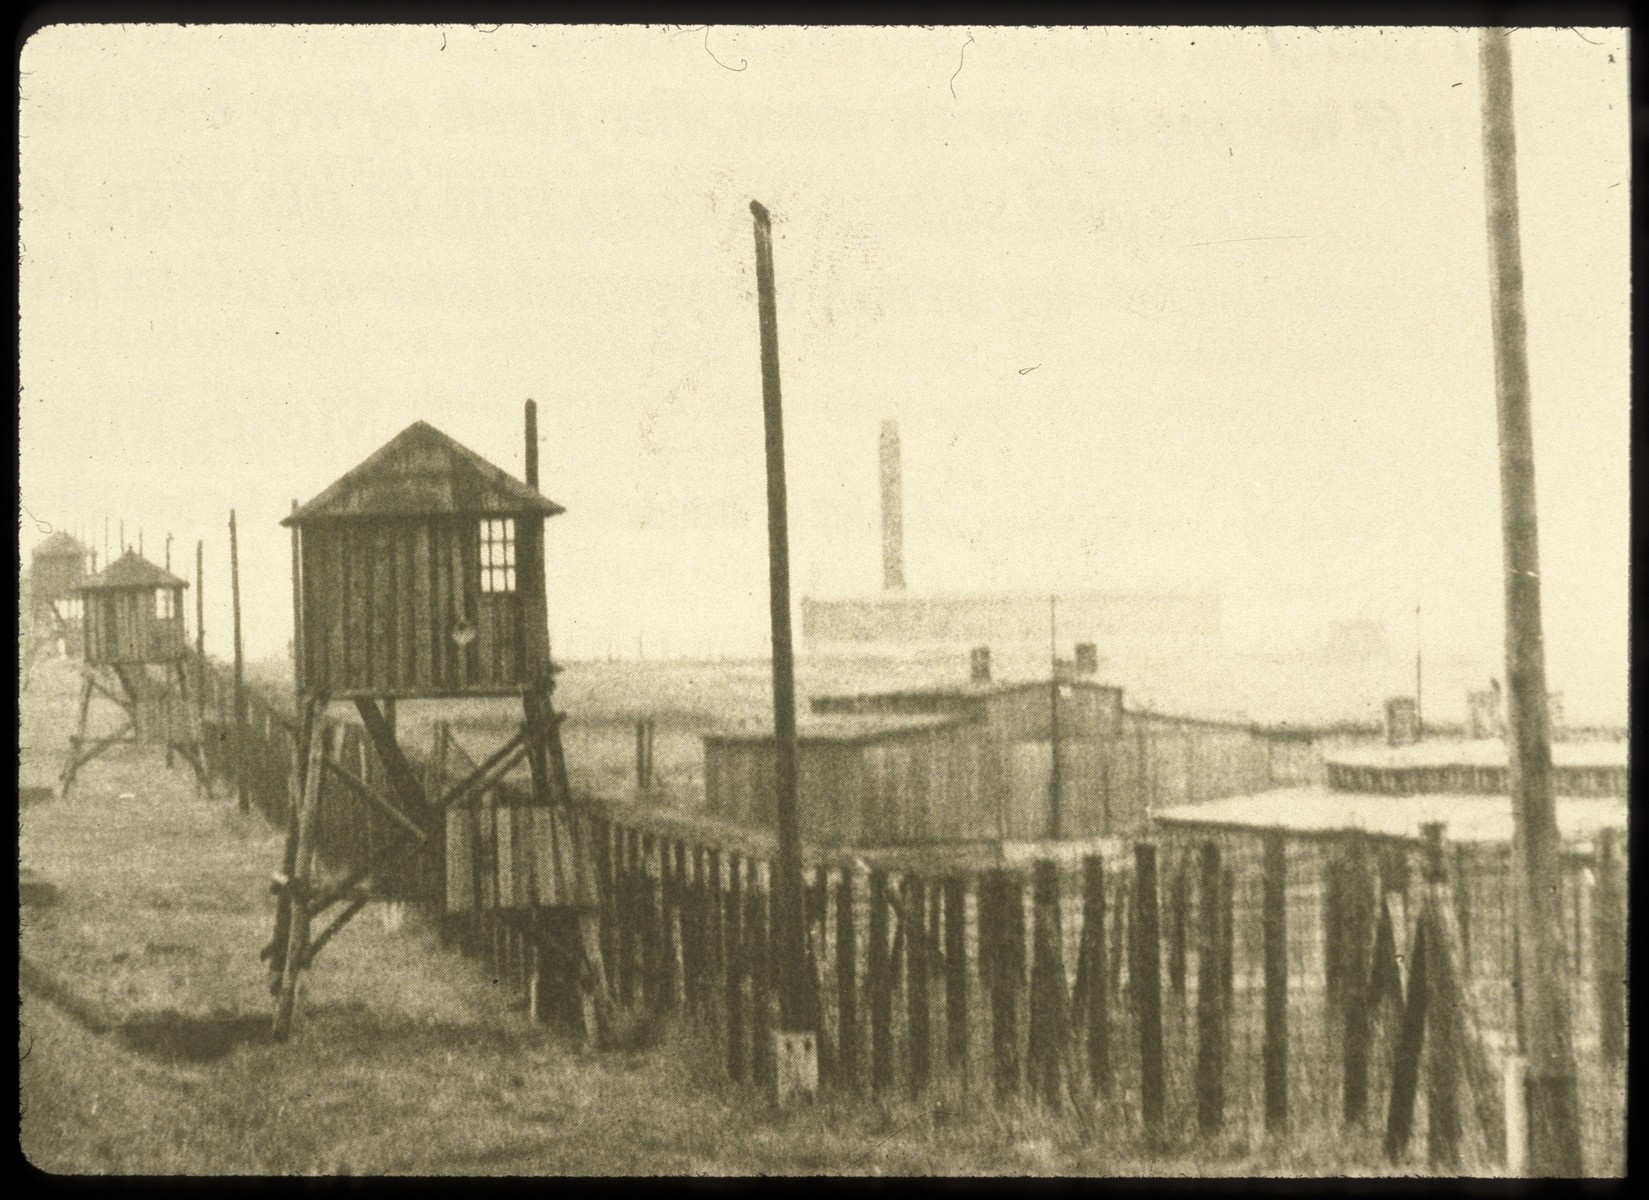 View of the watch towers and fence surrounding the Majdanek concentration camp.